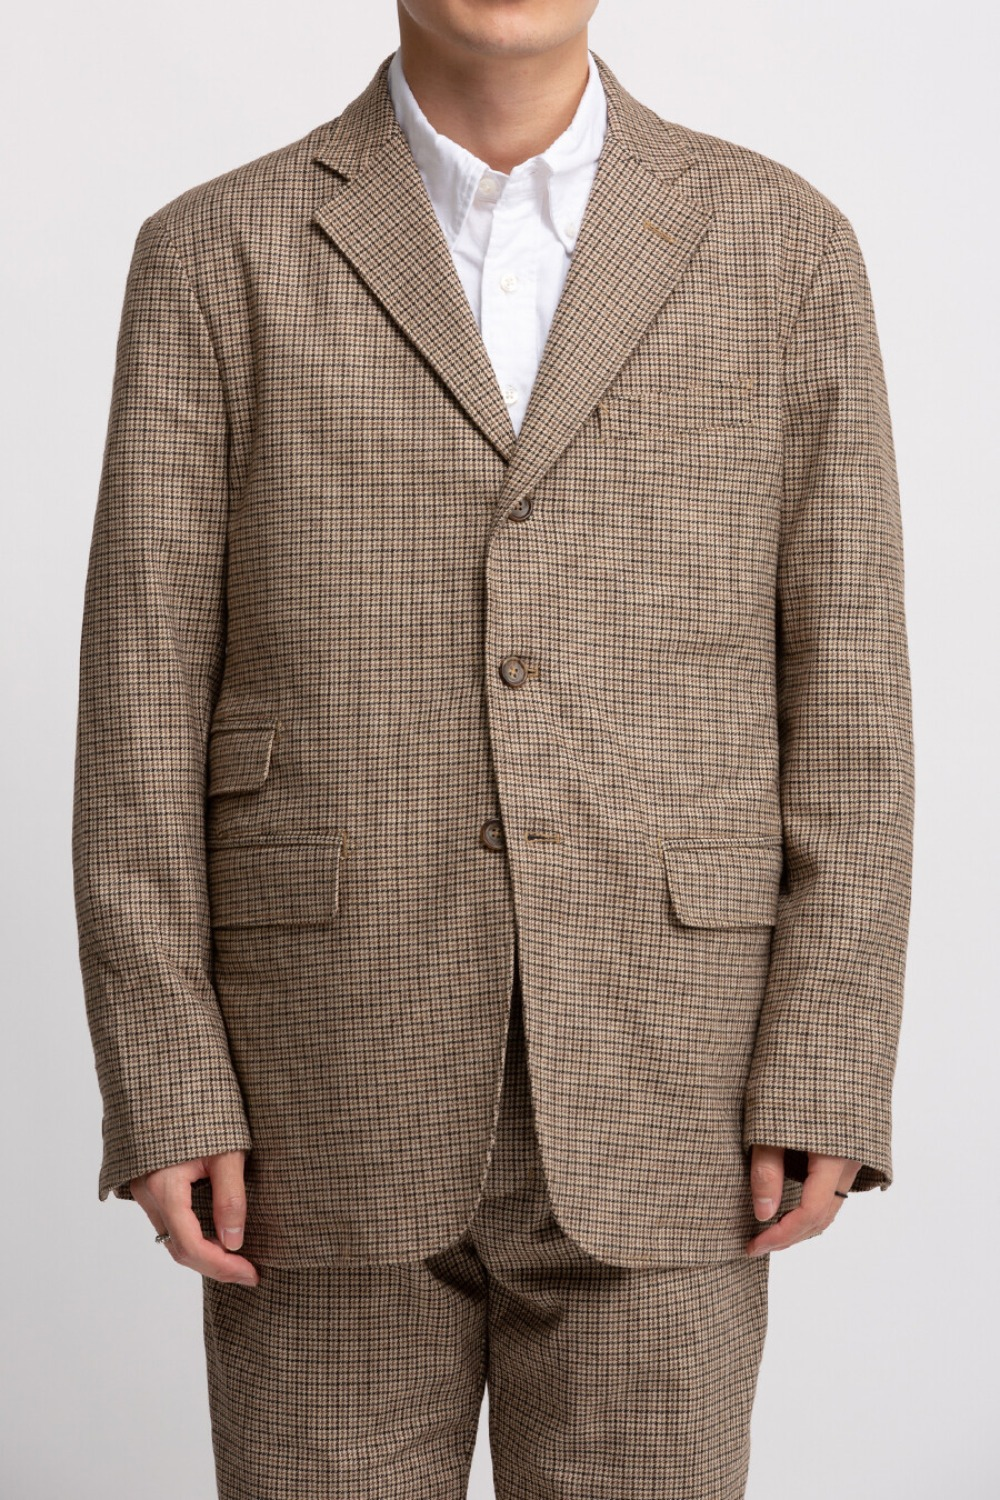 LAWRENCE JACKET BROWN WOOL POLY GUNCLUB